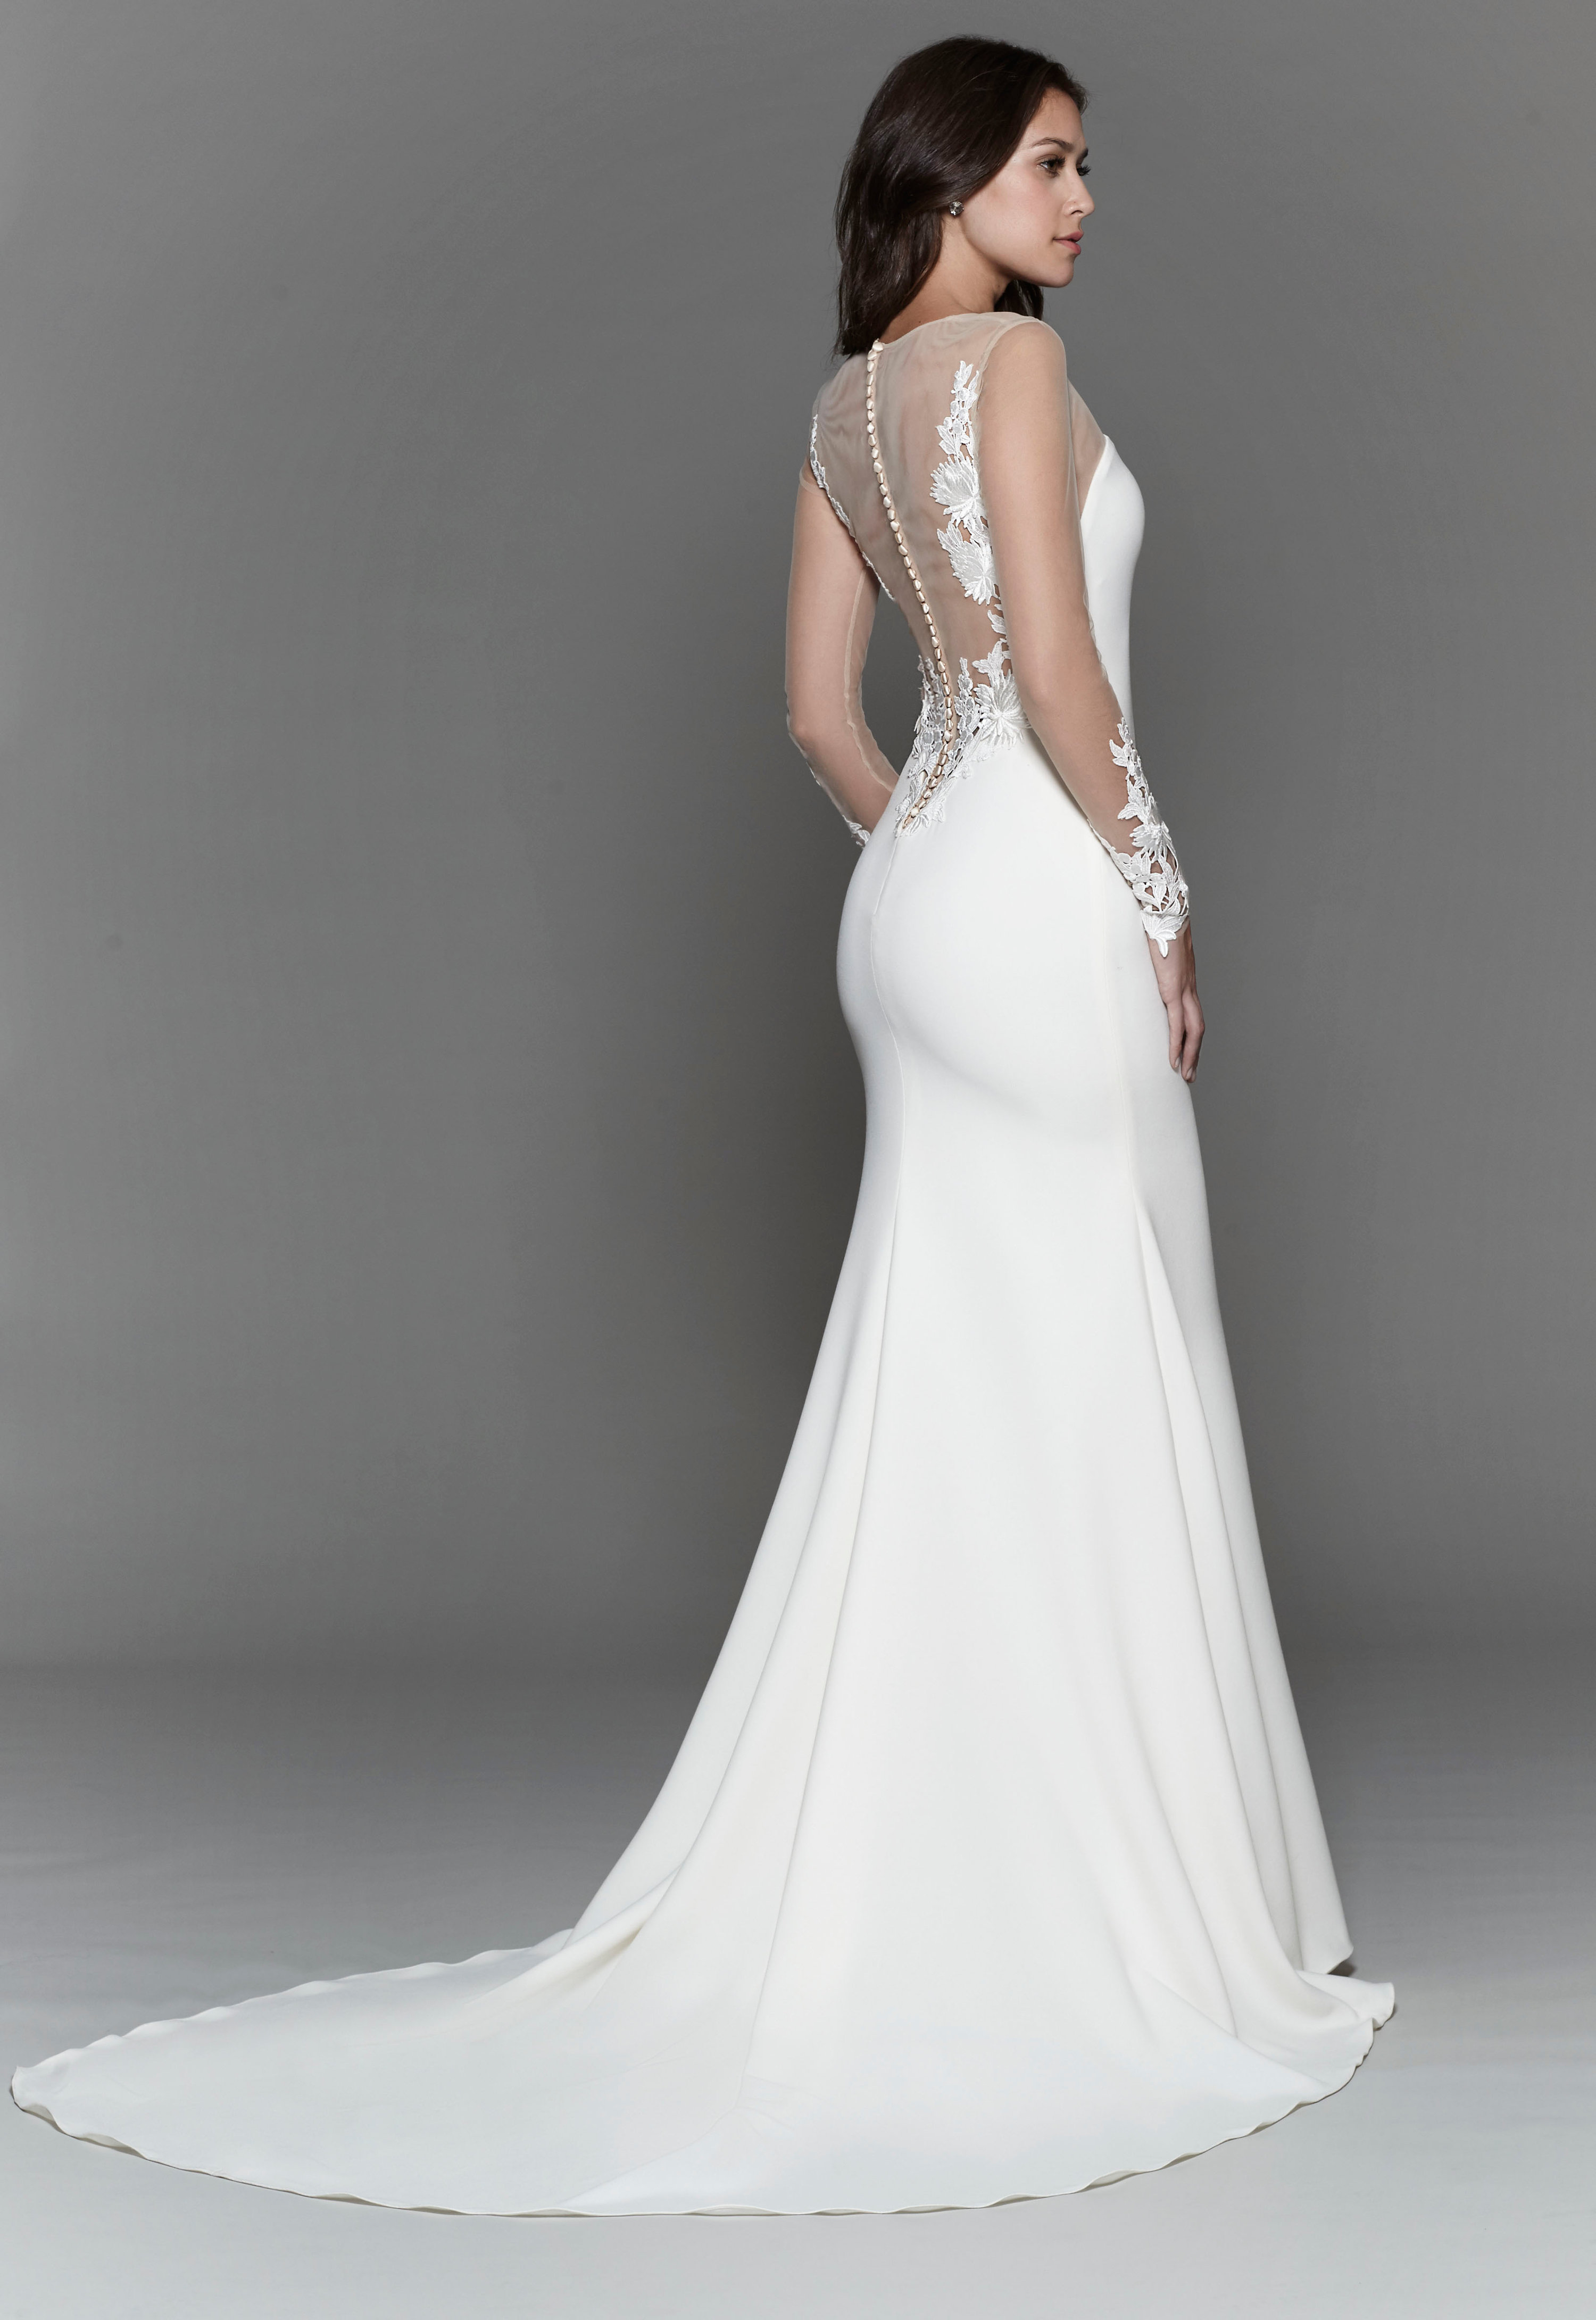 Bridal Gowns and Wedding Dresses by JLM Couture - Style 2712